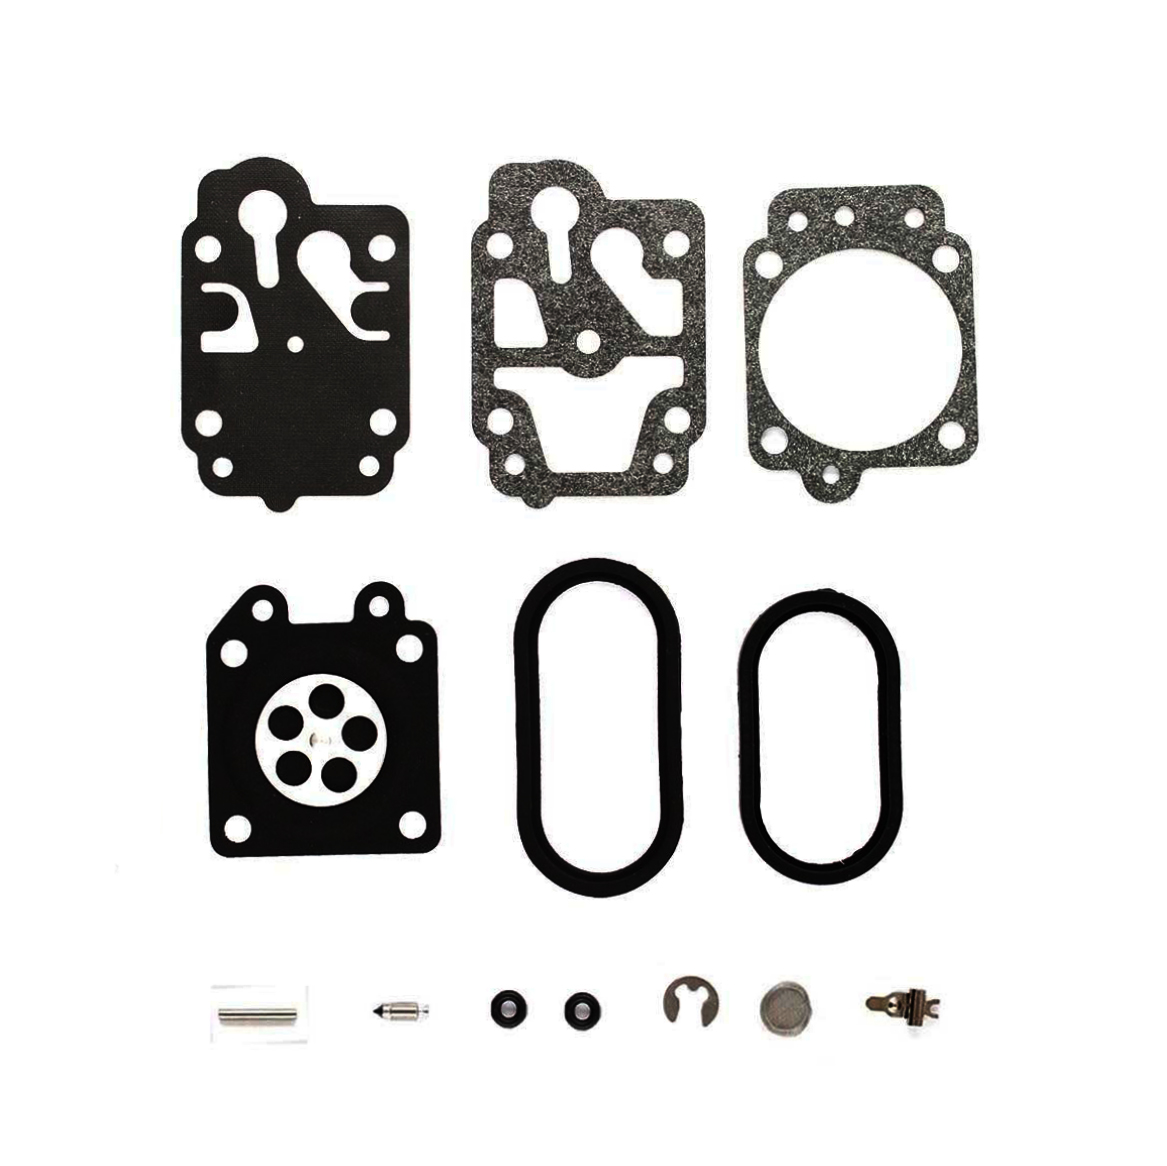 Walbro Carburetor Repair Kit for Red Max BCZ2500DL, S/GZ25N 2 Cycle Trimmers & Others (Carburetor WAY-1-1) K20-WYA